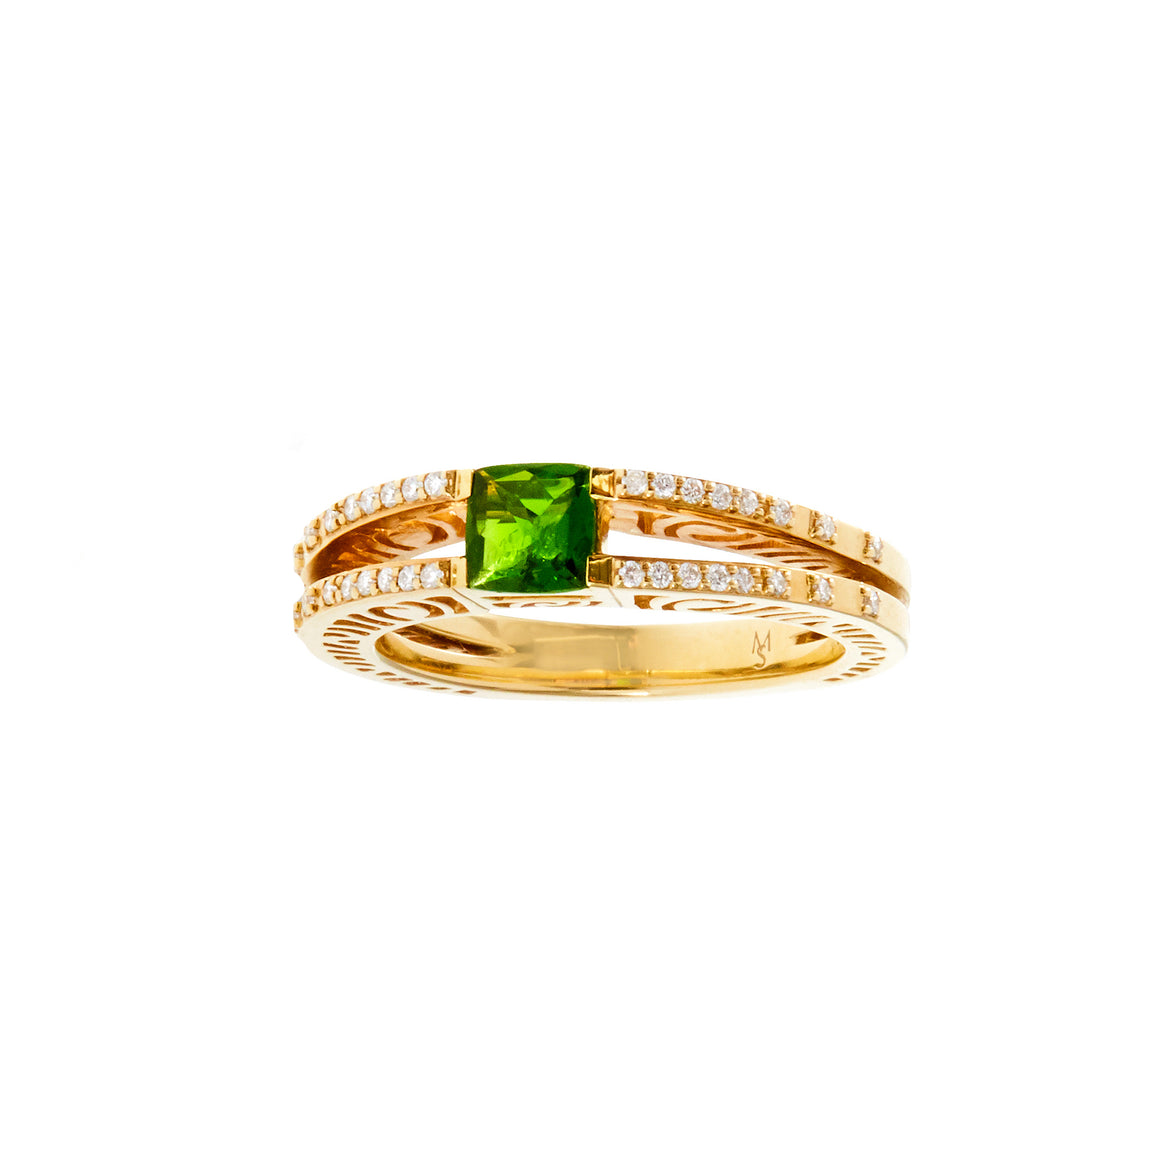 Martha Seely 14k Yellow Gold and Chrome Tourmaline Ring